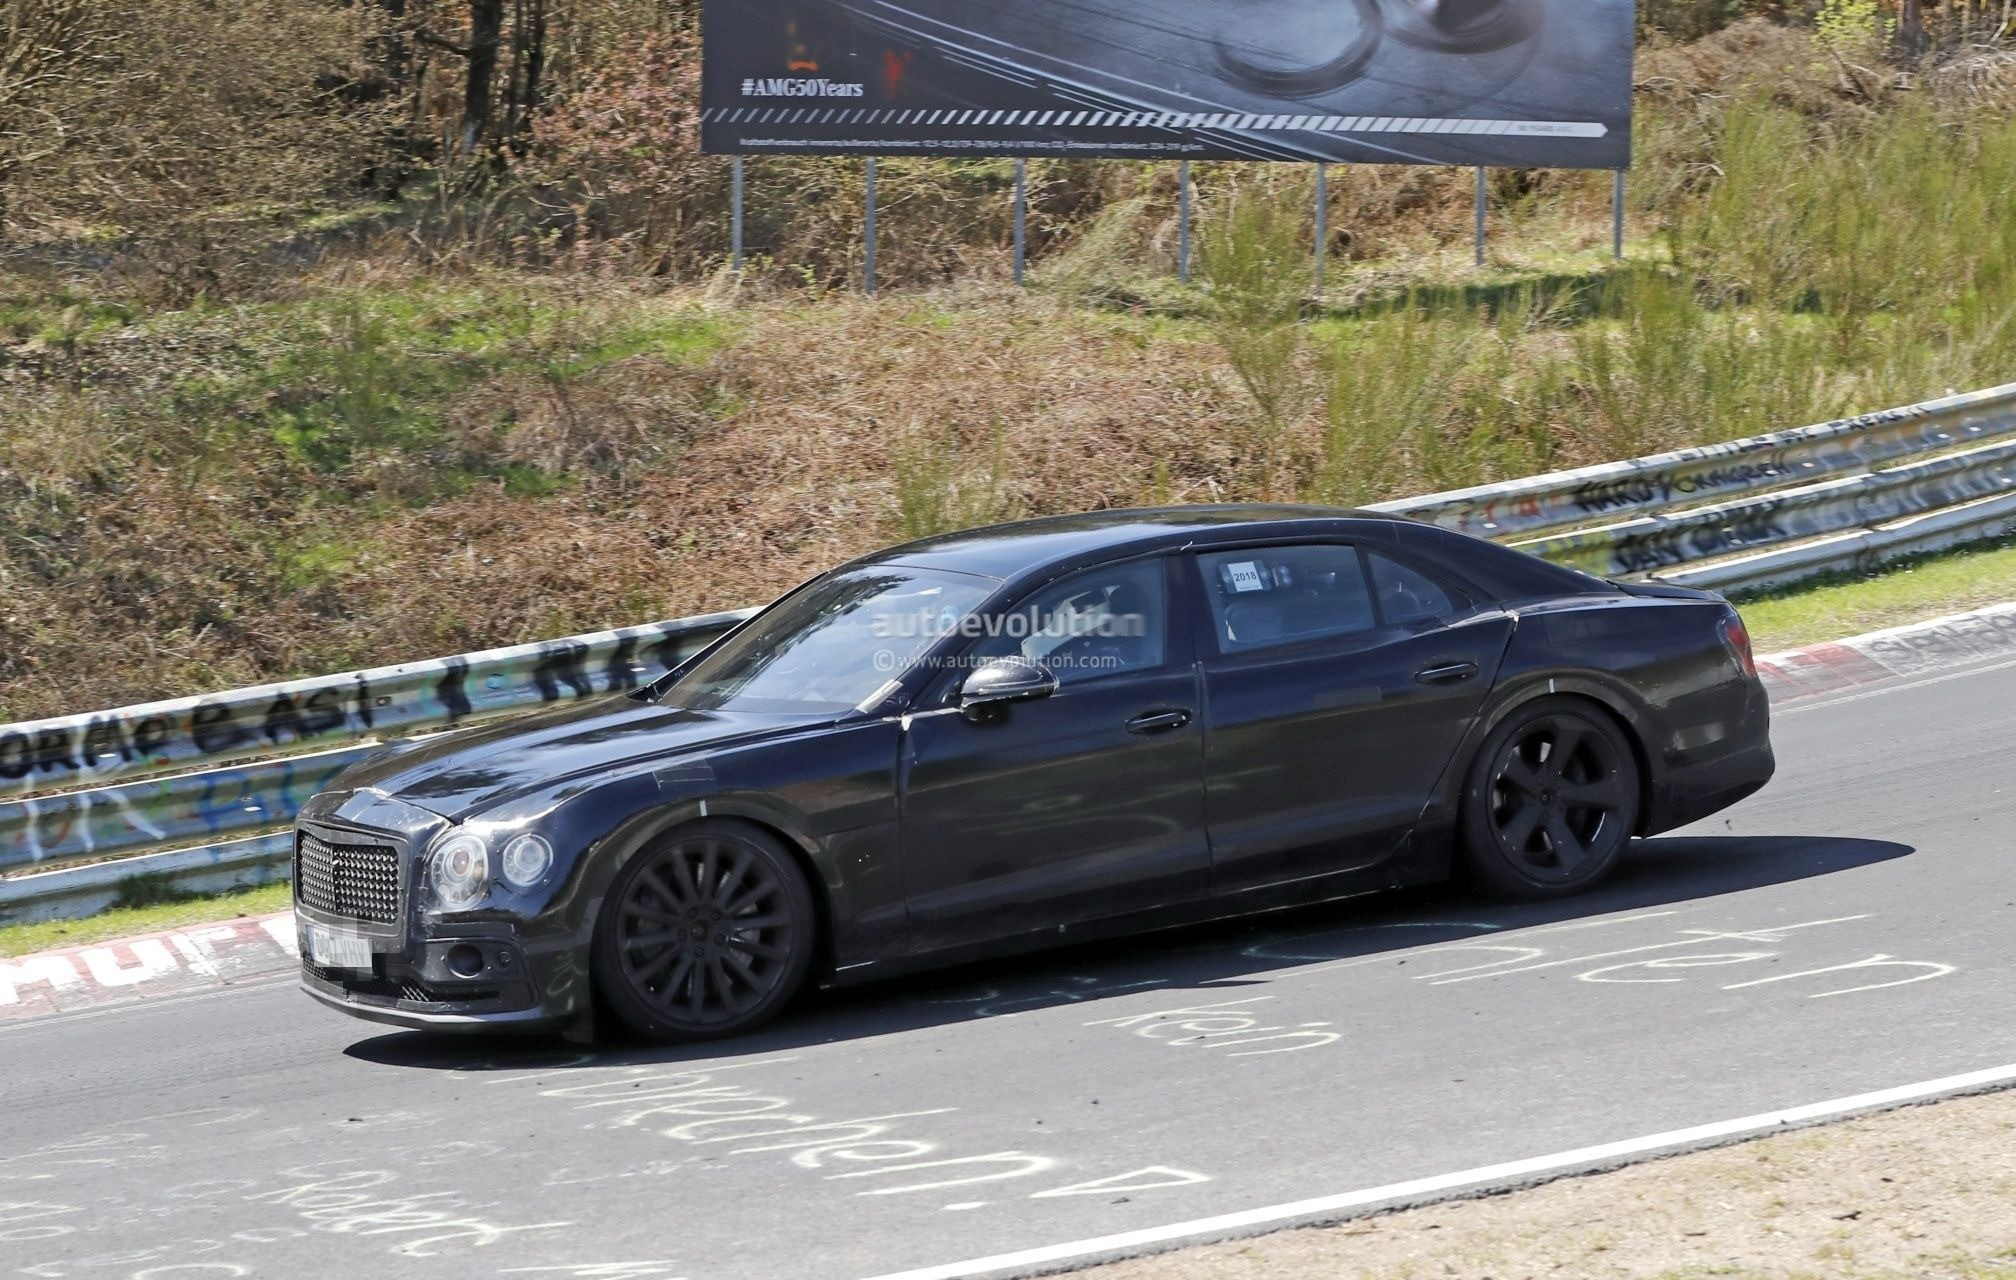 Here S The 2020 Bentley Flying Spur Taking On The Nurburgring